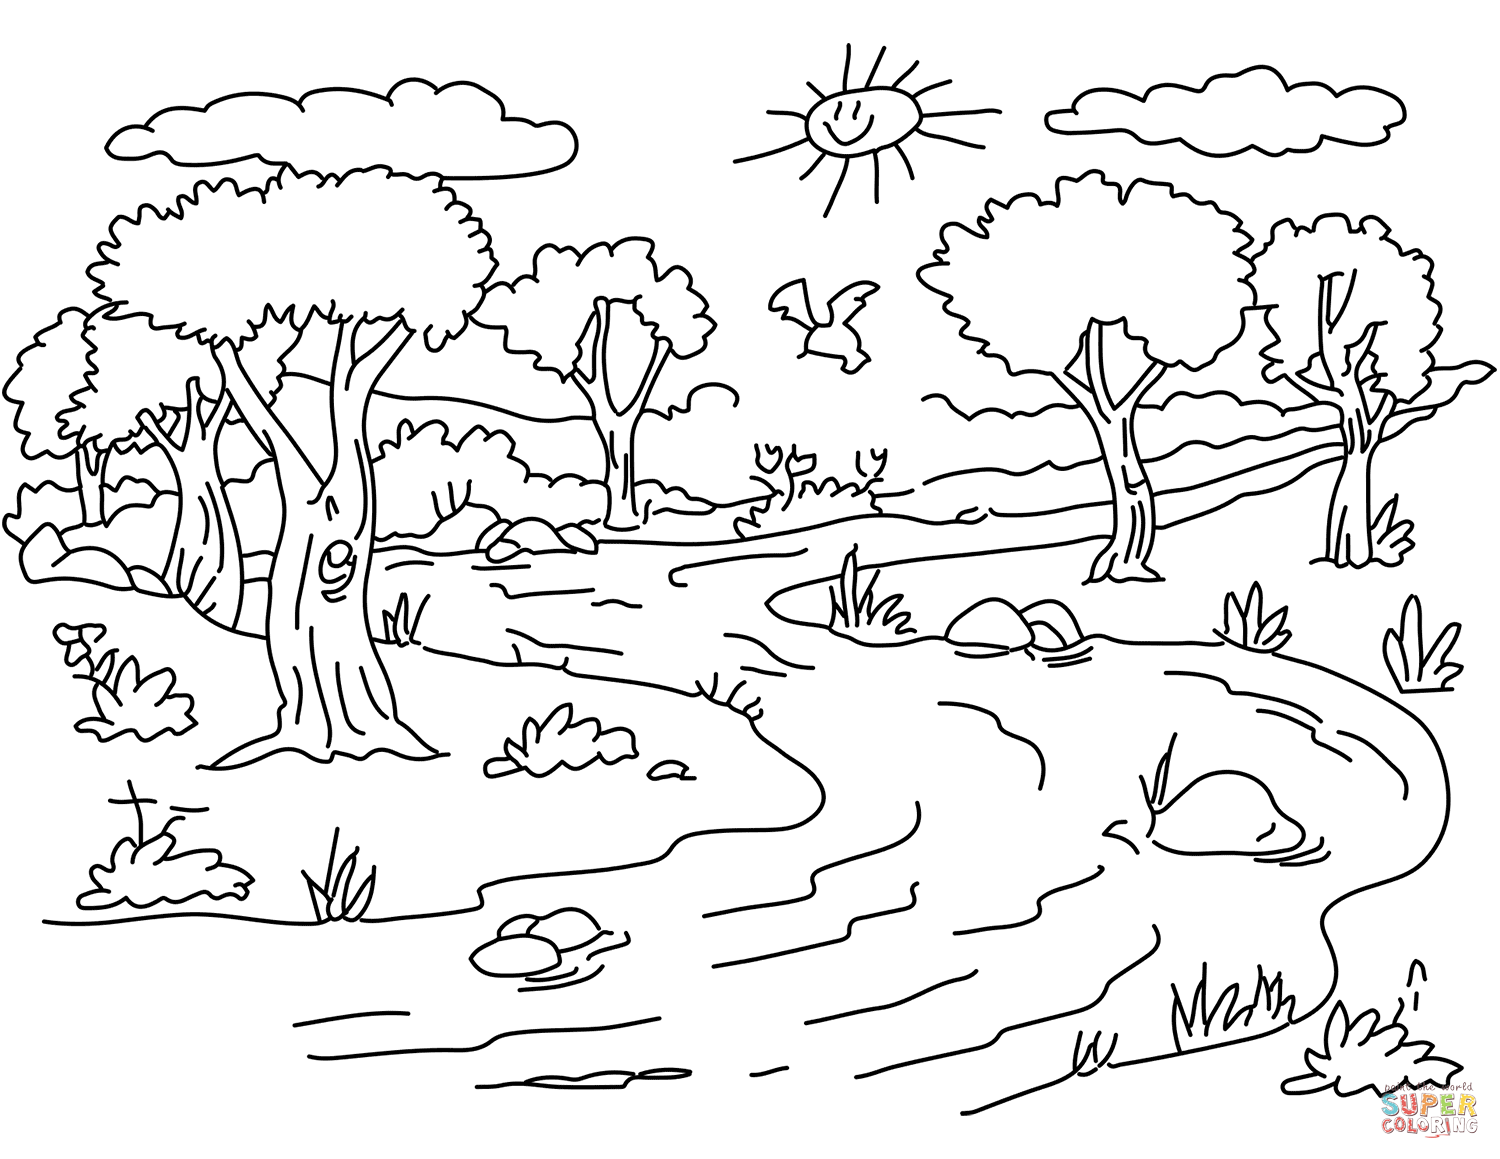 Free Coloring Pages Of Nature Landscape Drawing For Kids Coloring Pages Nature Nature Drawing